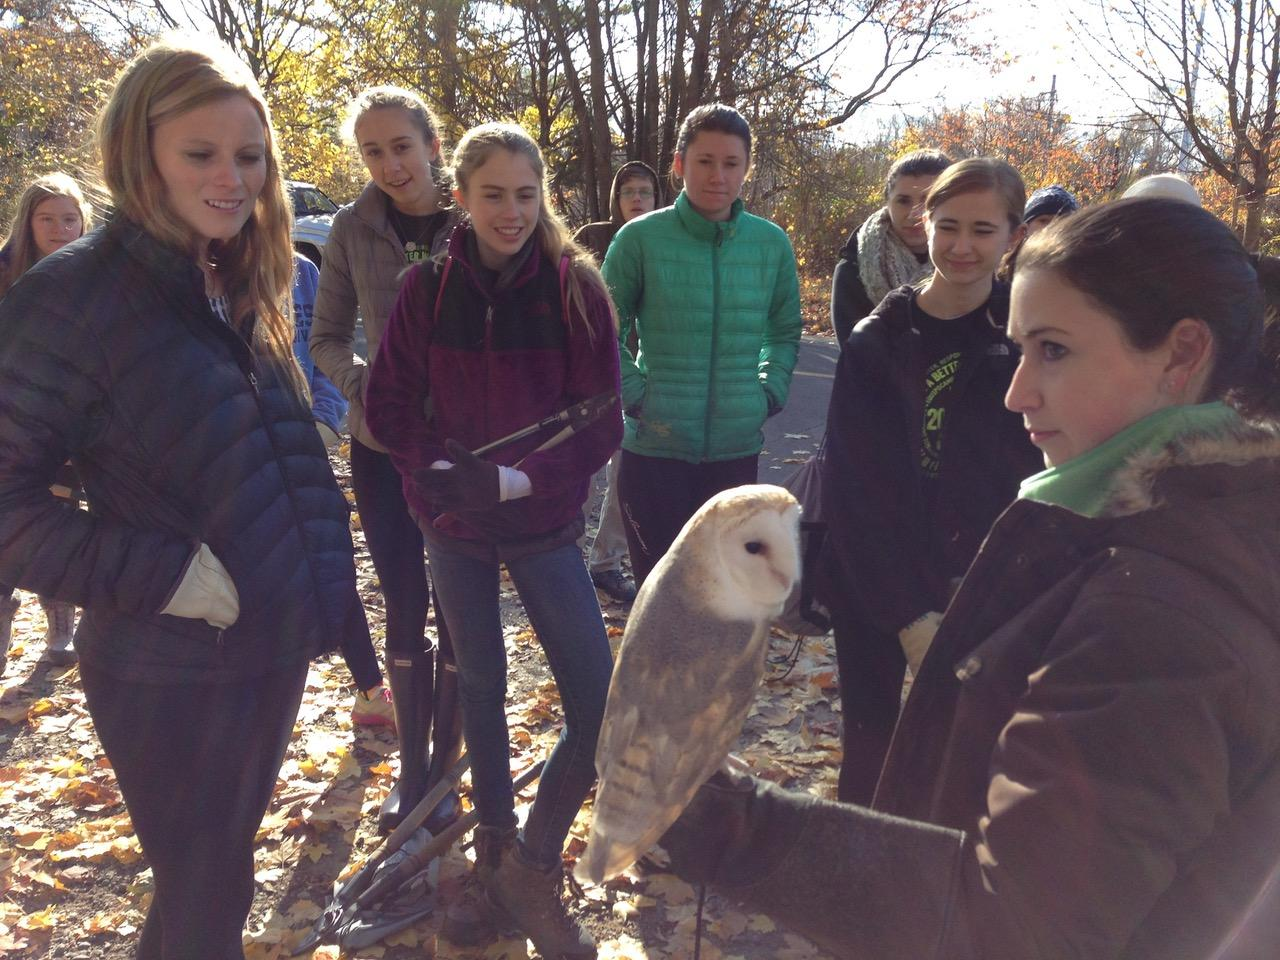 A Barn Owl visits volunteers at the Smith Richardson preserve in Westport, CT. Hundreds of volunteers helped transform the overgrown land into a thriving ecosystem (Photo courtesy of Jerid O'Connell).